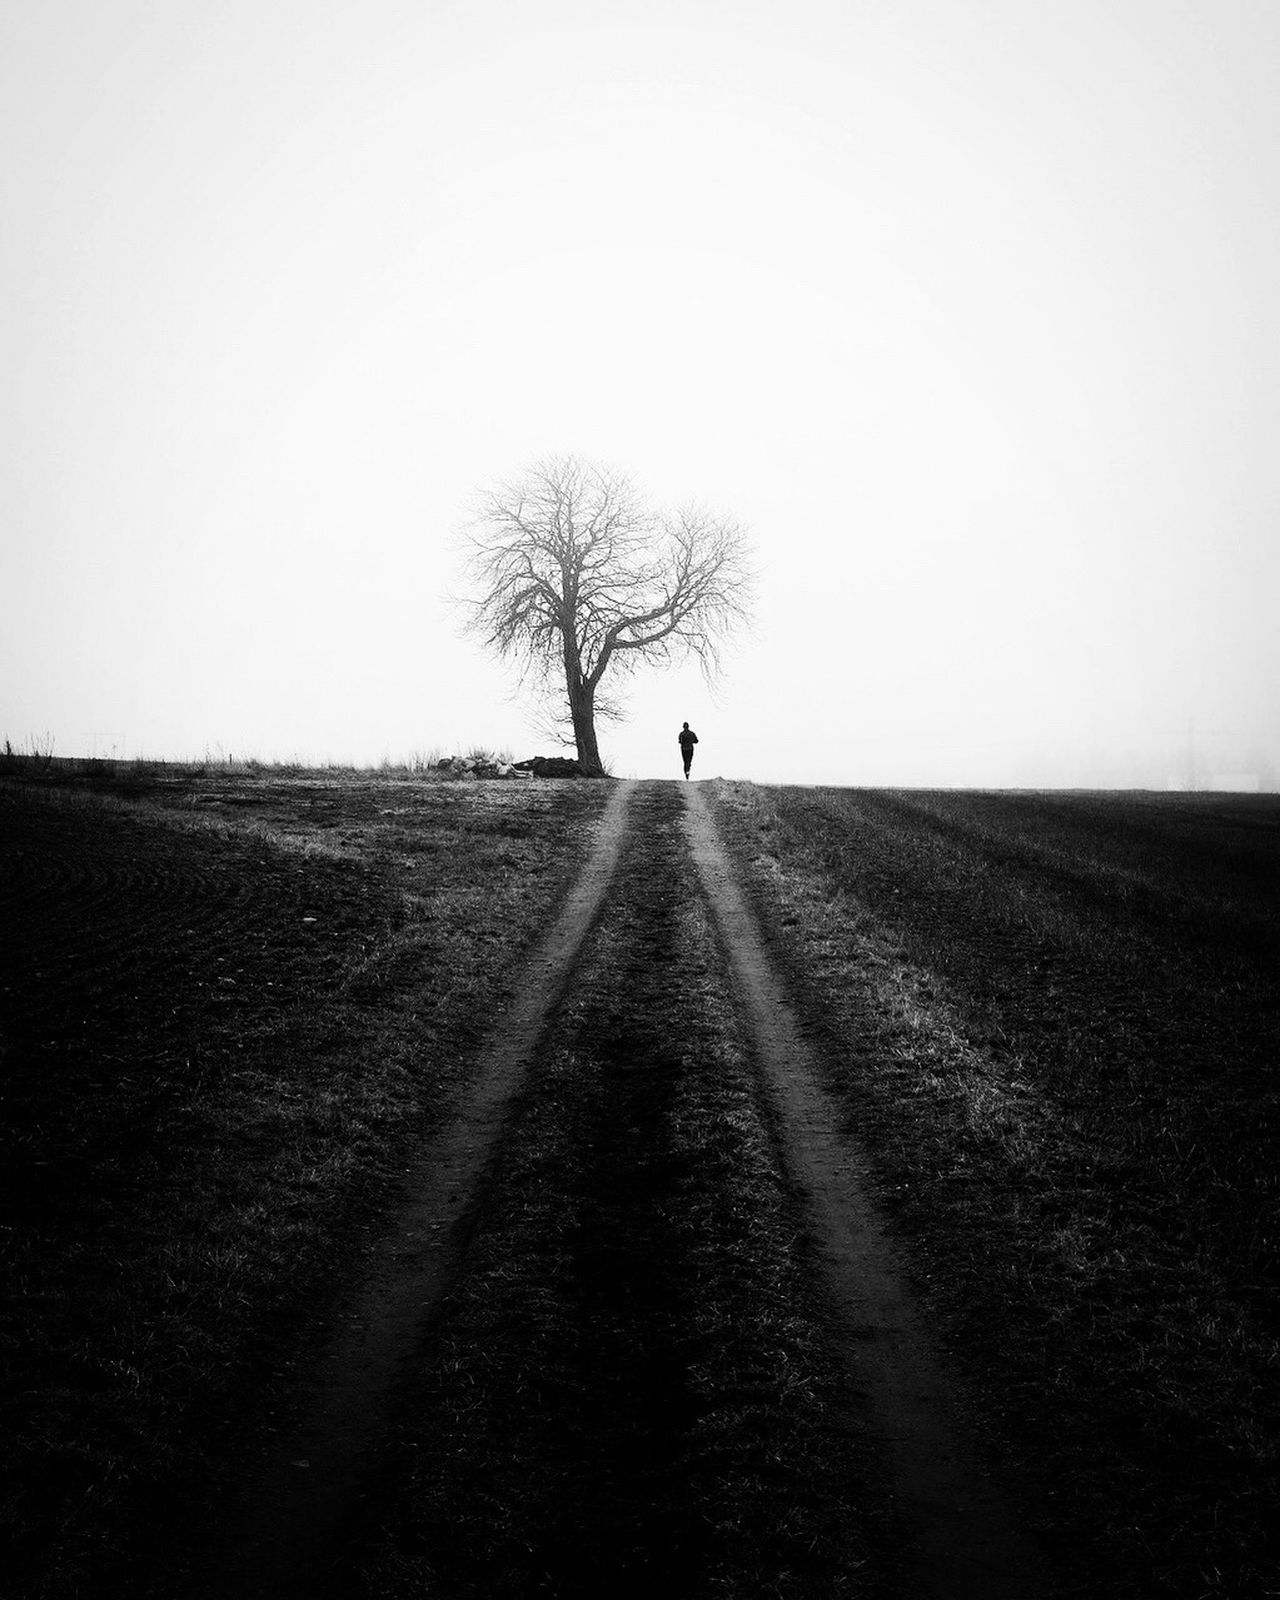 Nature Tree Tranquil Scene Outdoors Beauty In Nature Landscape Black And White Street Photography Tranquility Silhouette Monochrome Bw_collection One Person Tree Field